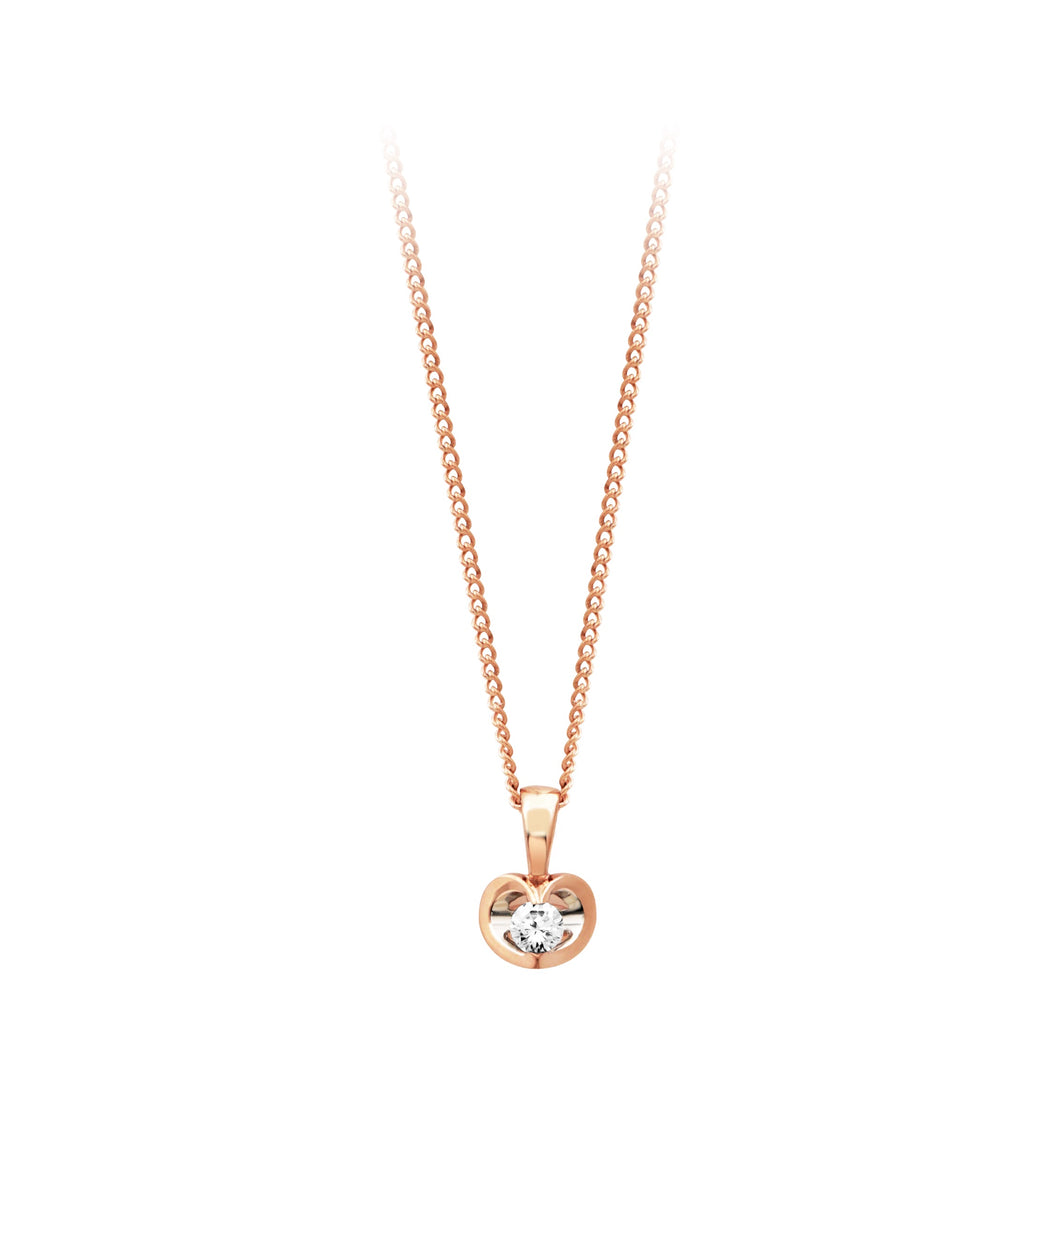 Diamond Pendant  10k Rose Gold  0.05ct  Comes with 10k Gold 18in Chain